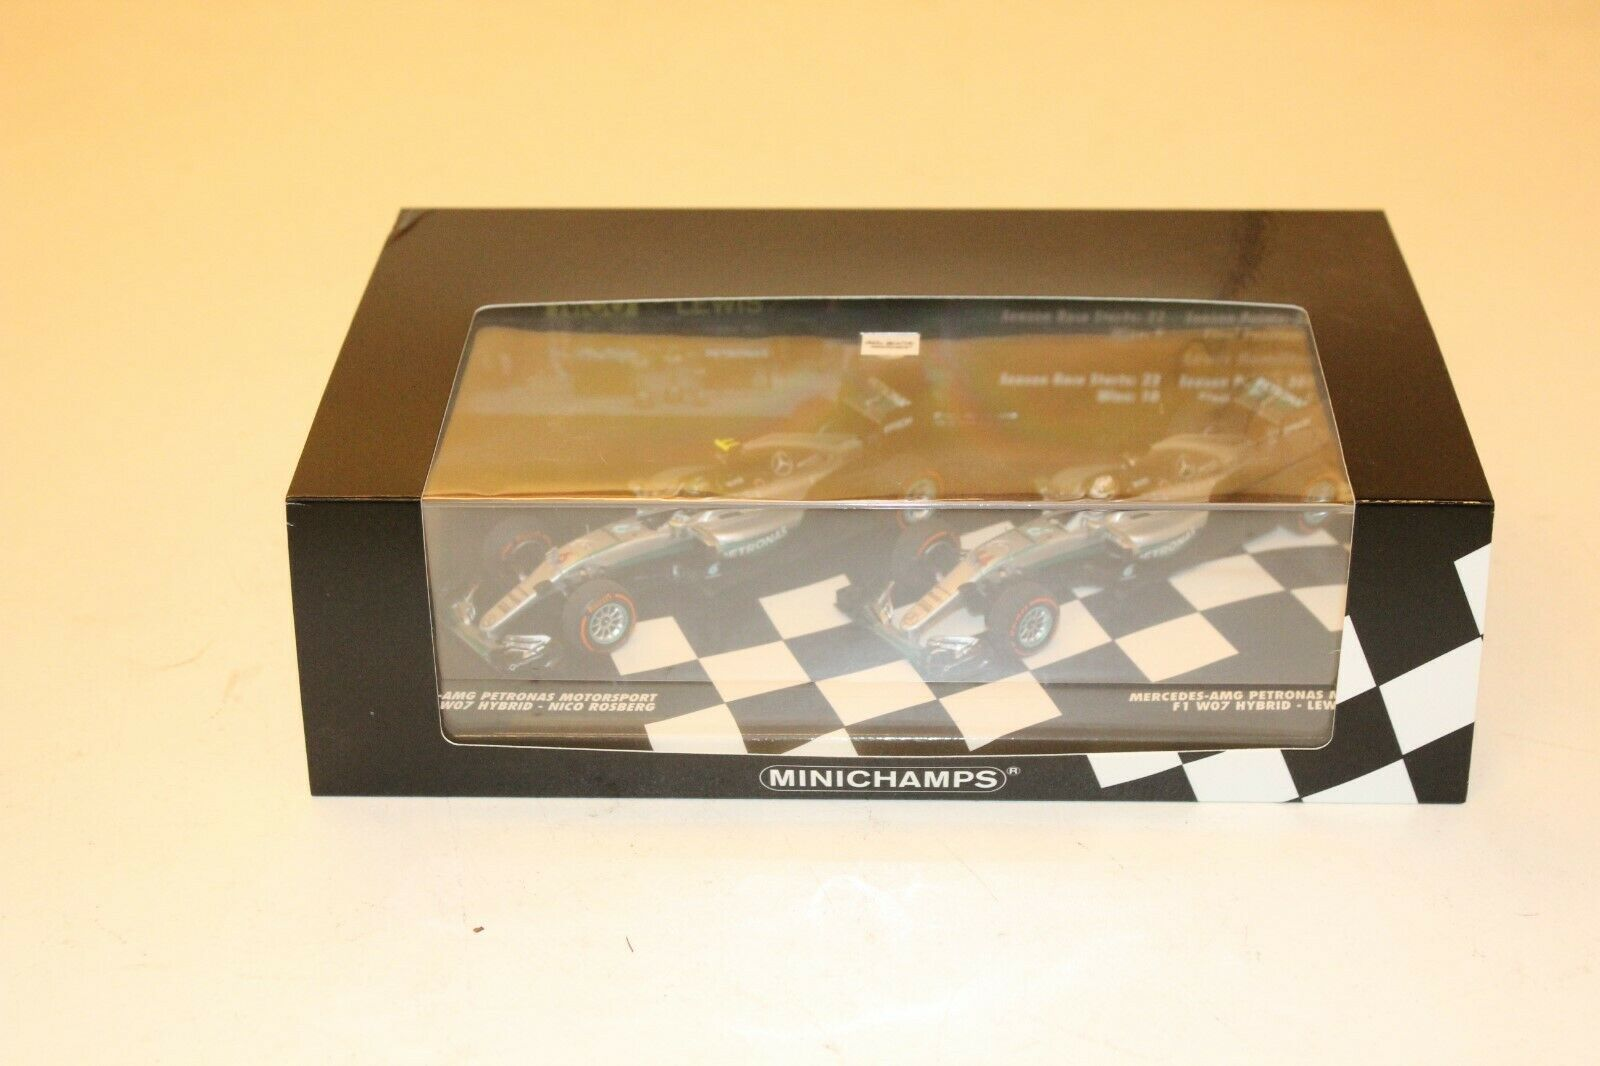 Minichamps 1 43 Mercedes AMG 2016 W07 F1 World Championship 2 Car Set 412164406